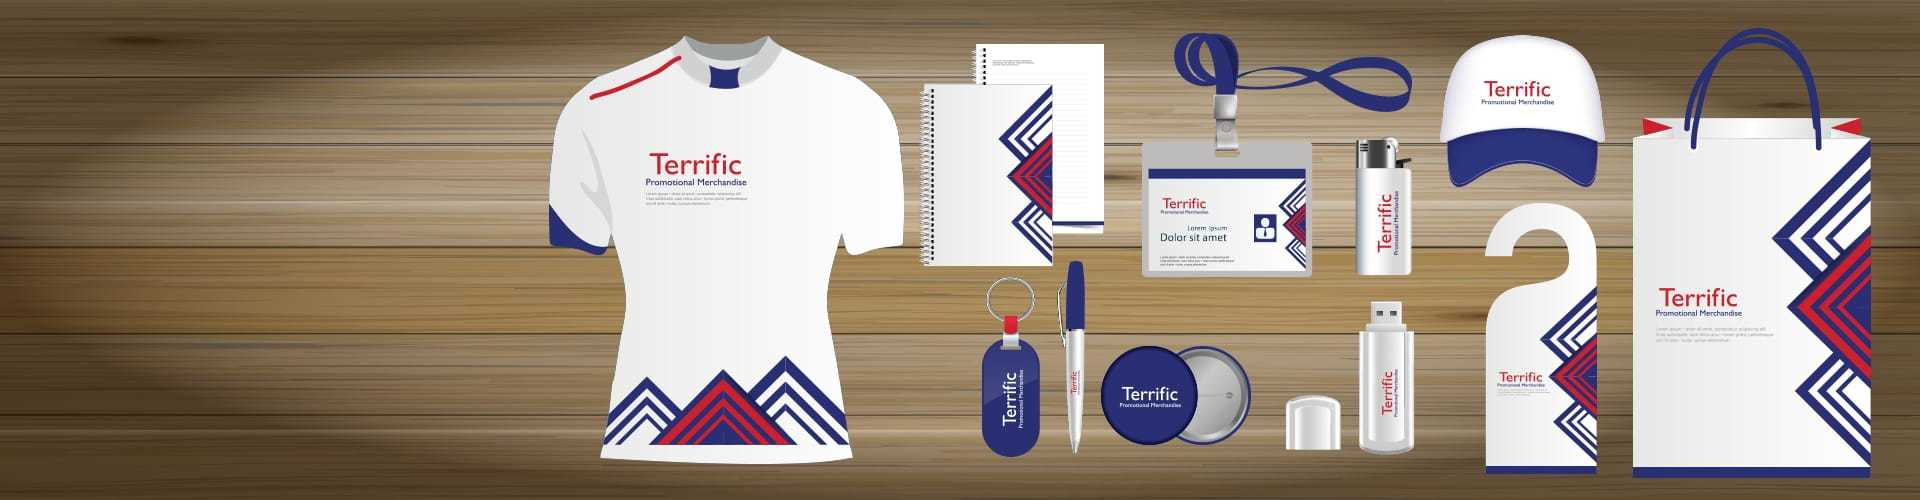 Printed Mugs, Pens, Clothing, Lanyards and Promotional Products